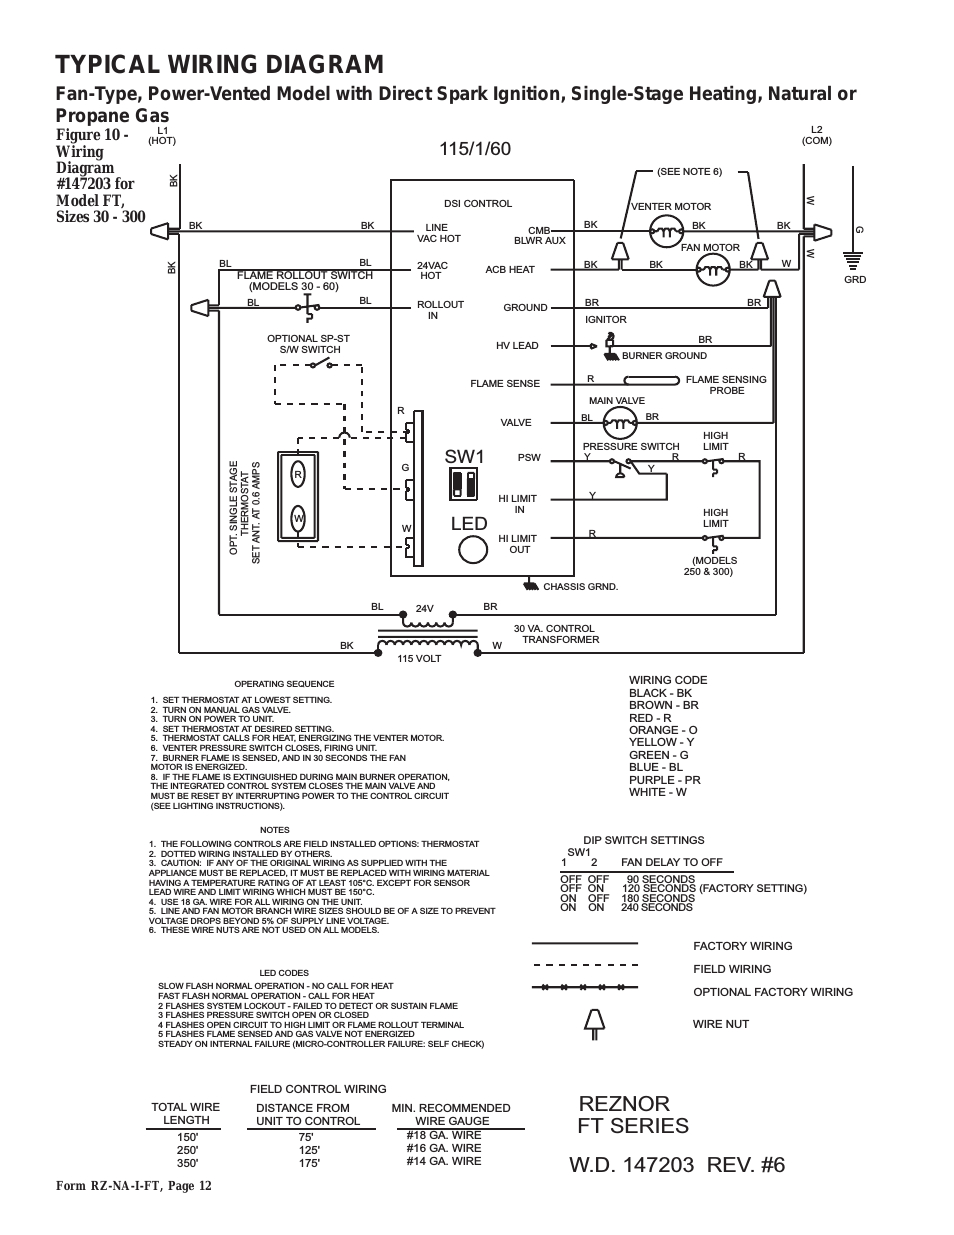 Reznor Waste Oil Burner Diagram Circuit Wiring And Diagram Hub - Lanair waste oil heater wiring diagram